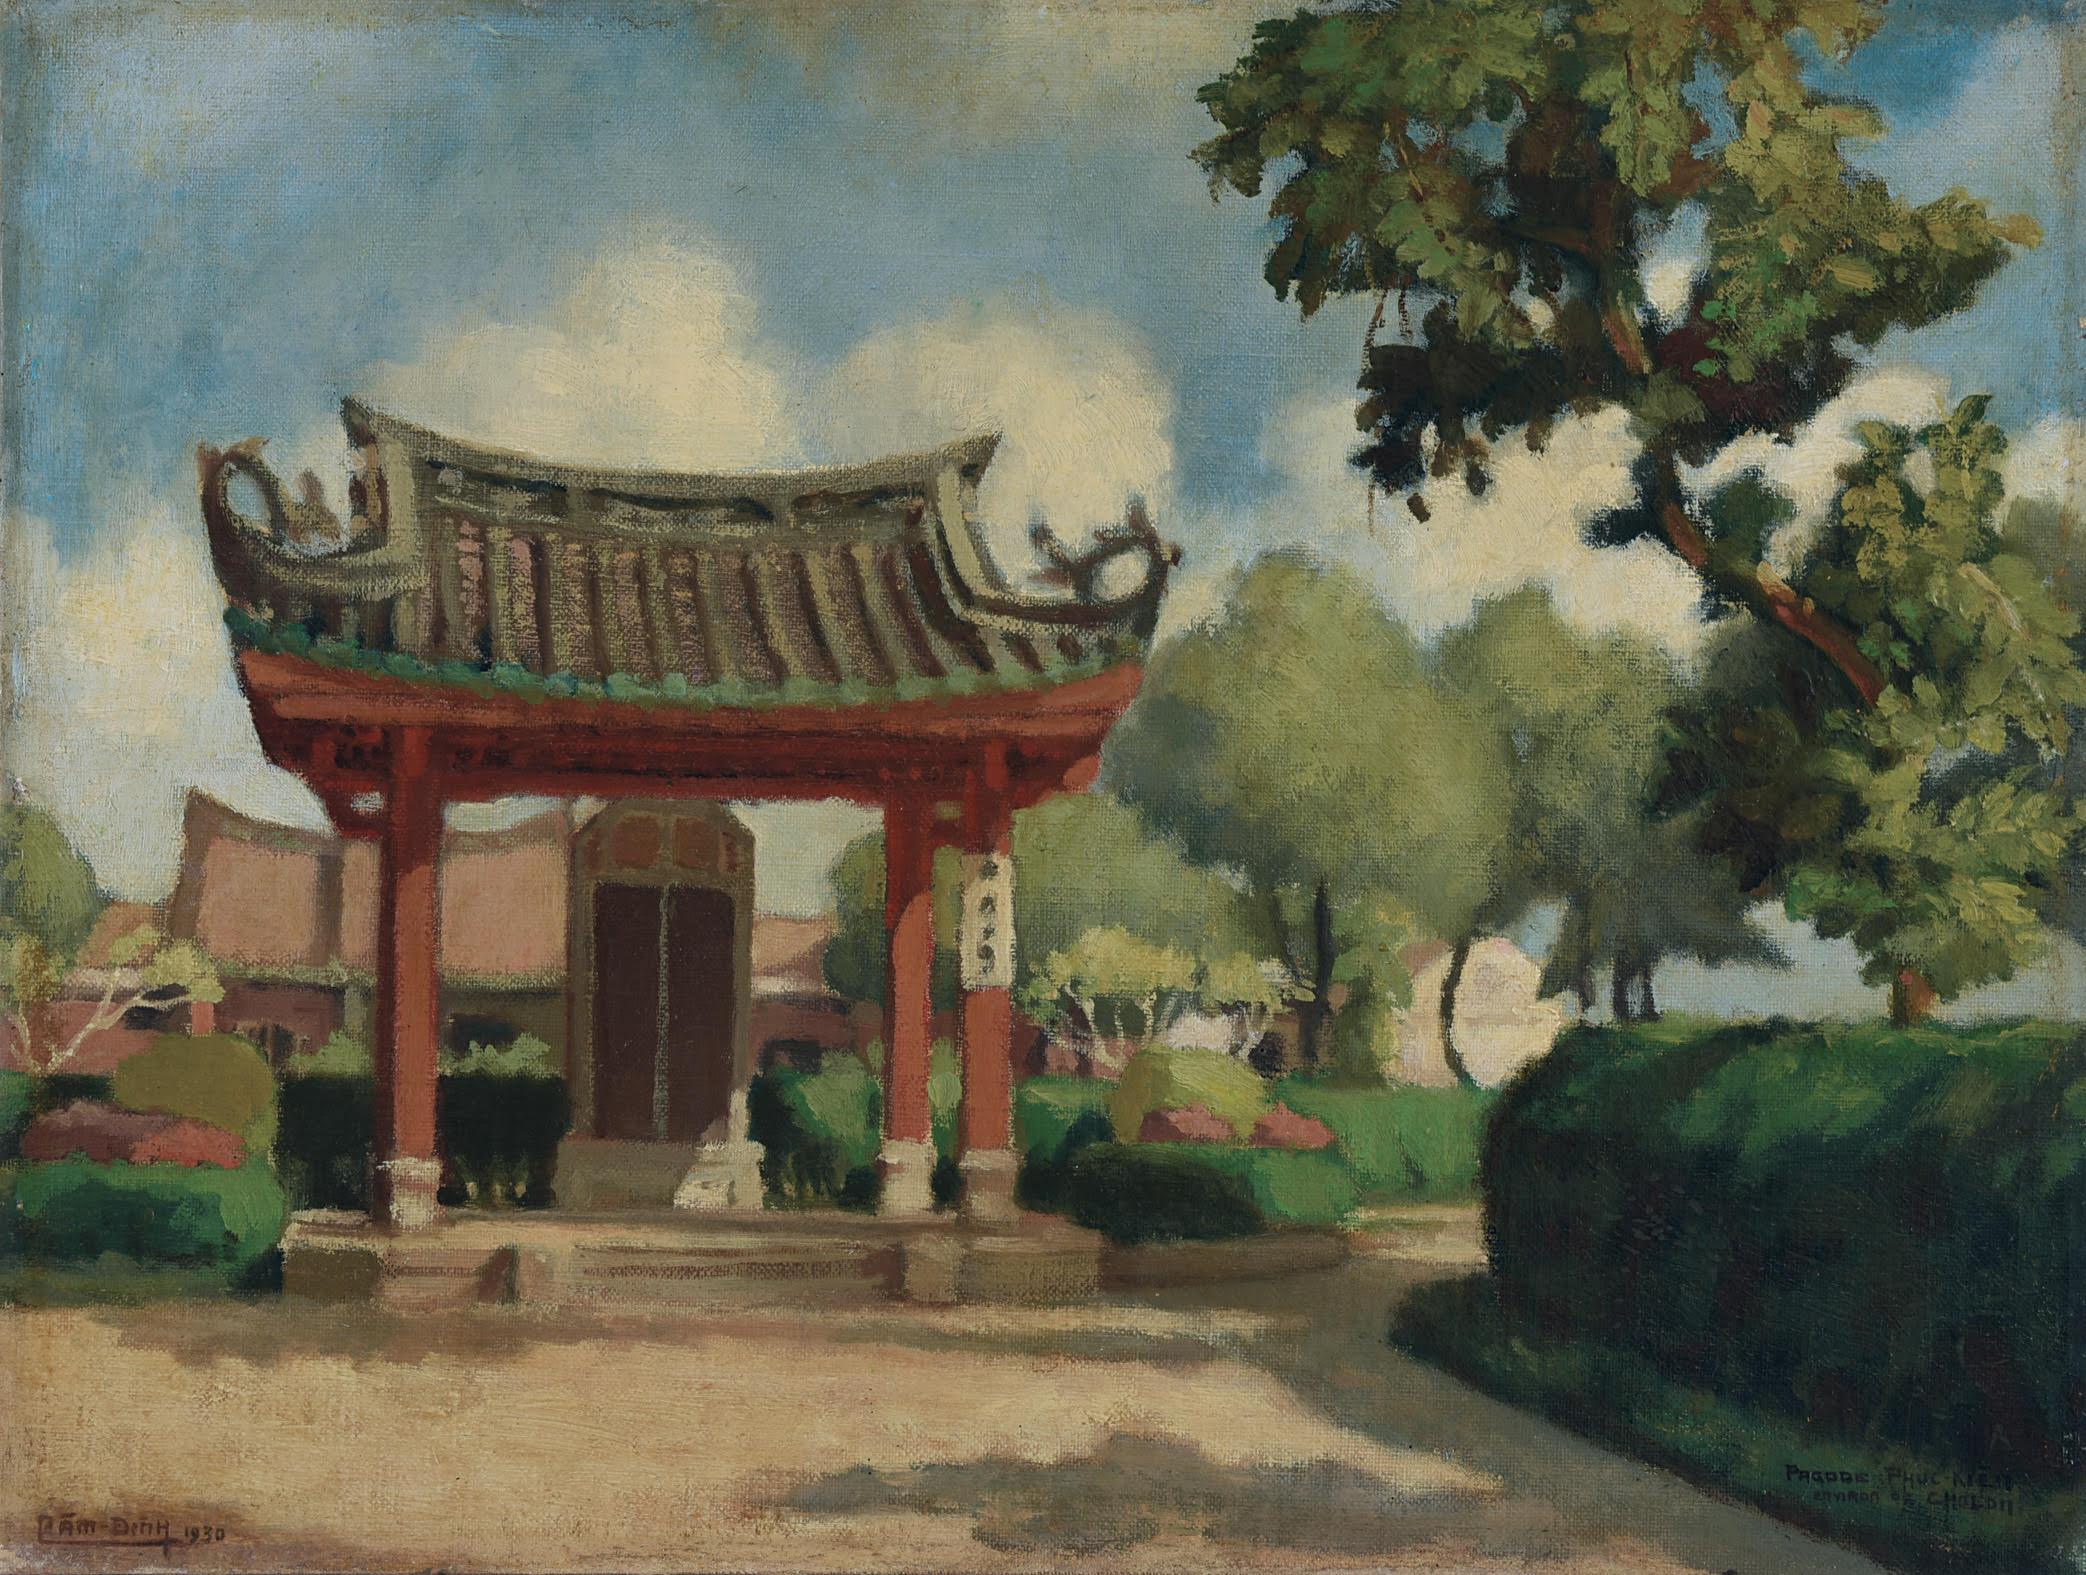 Le Quang Tinh, Portique de la Pagode Phuc-Kien, environ de Cholo (Pagoda Phuc-Kien's Portico, nearby Cholon), oil on panel, 35 x 46 cm, 1930